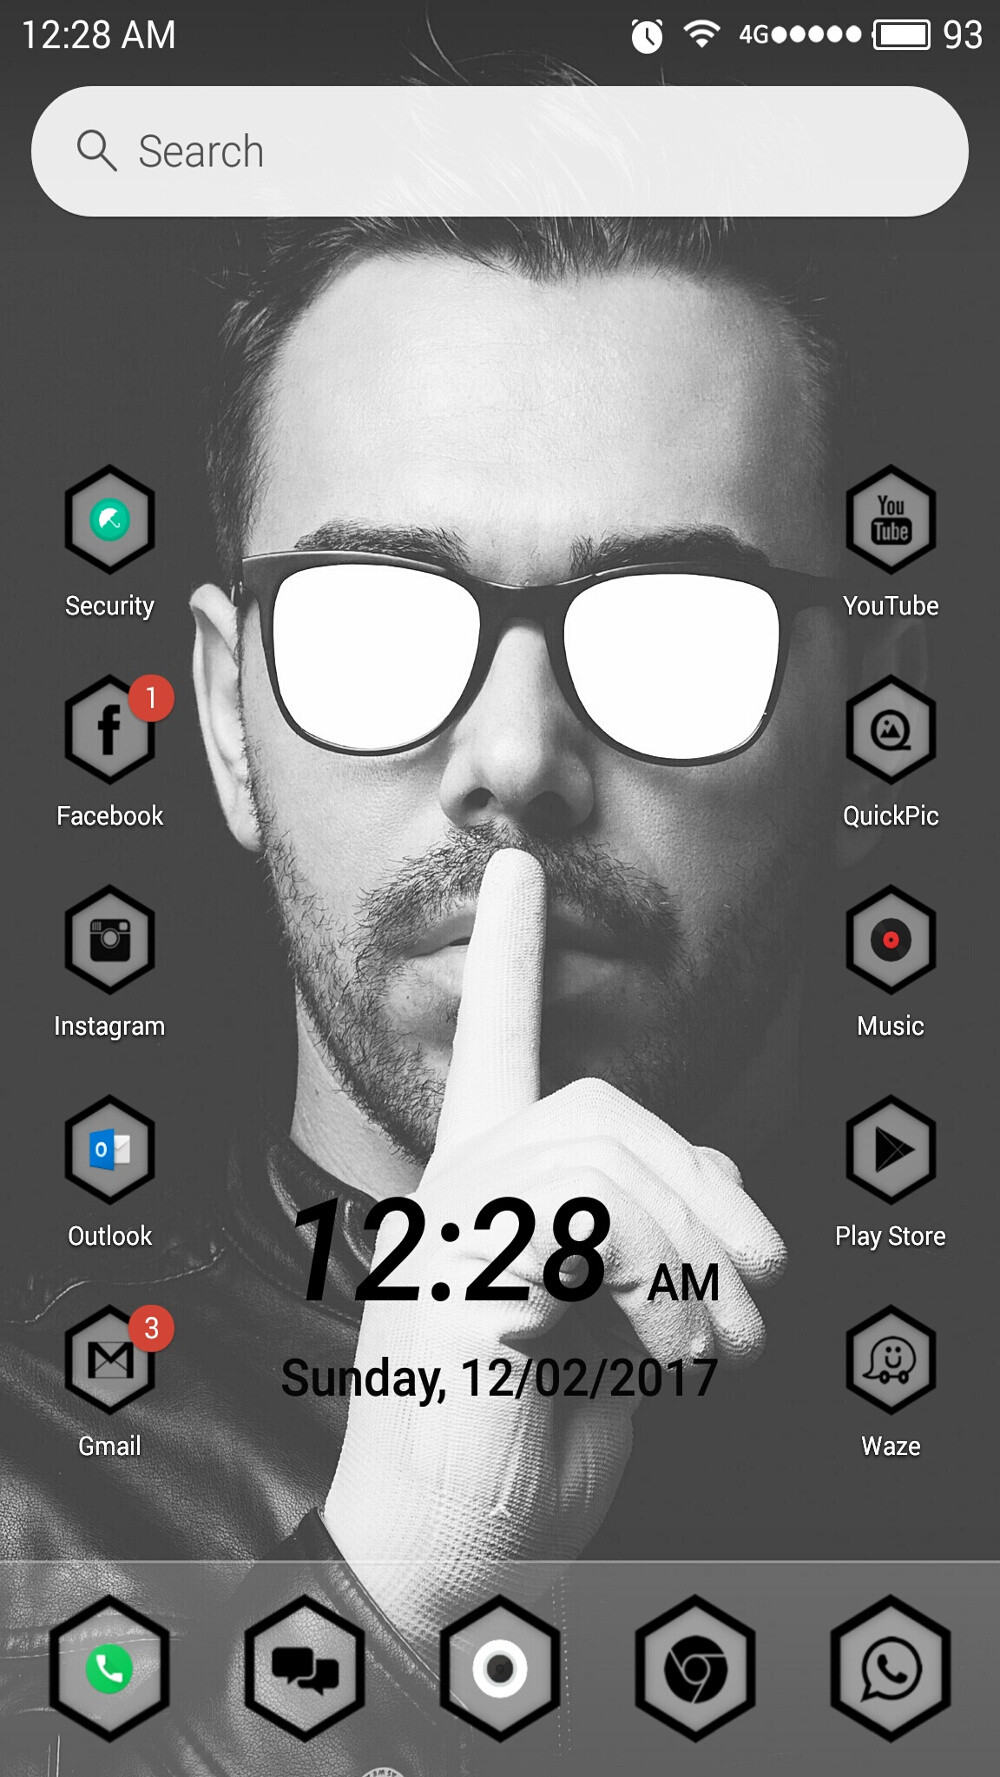 10 amazing Android home screen designs that will inspire you #4 ...